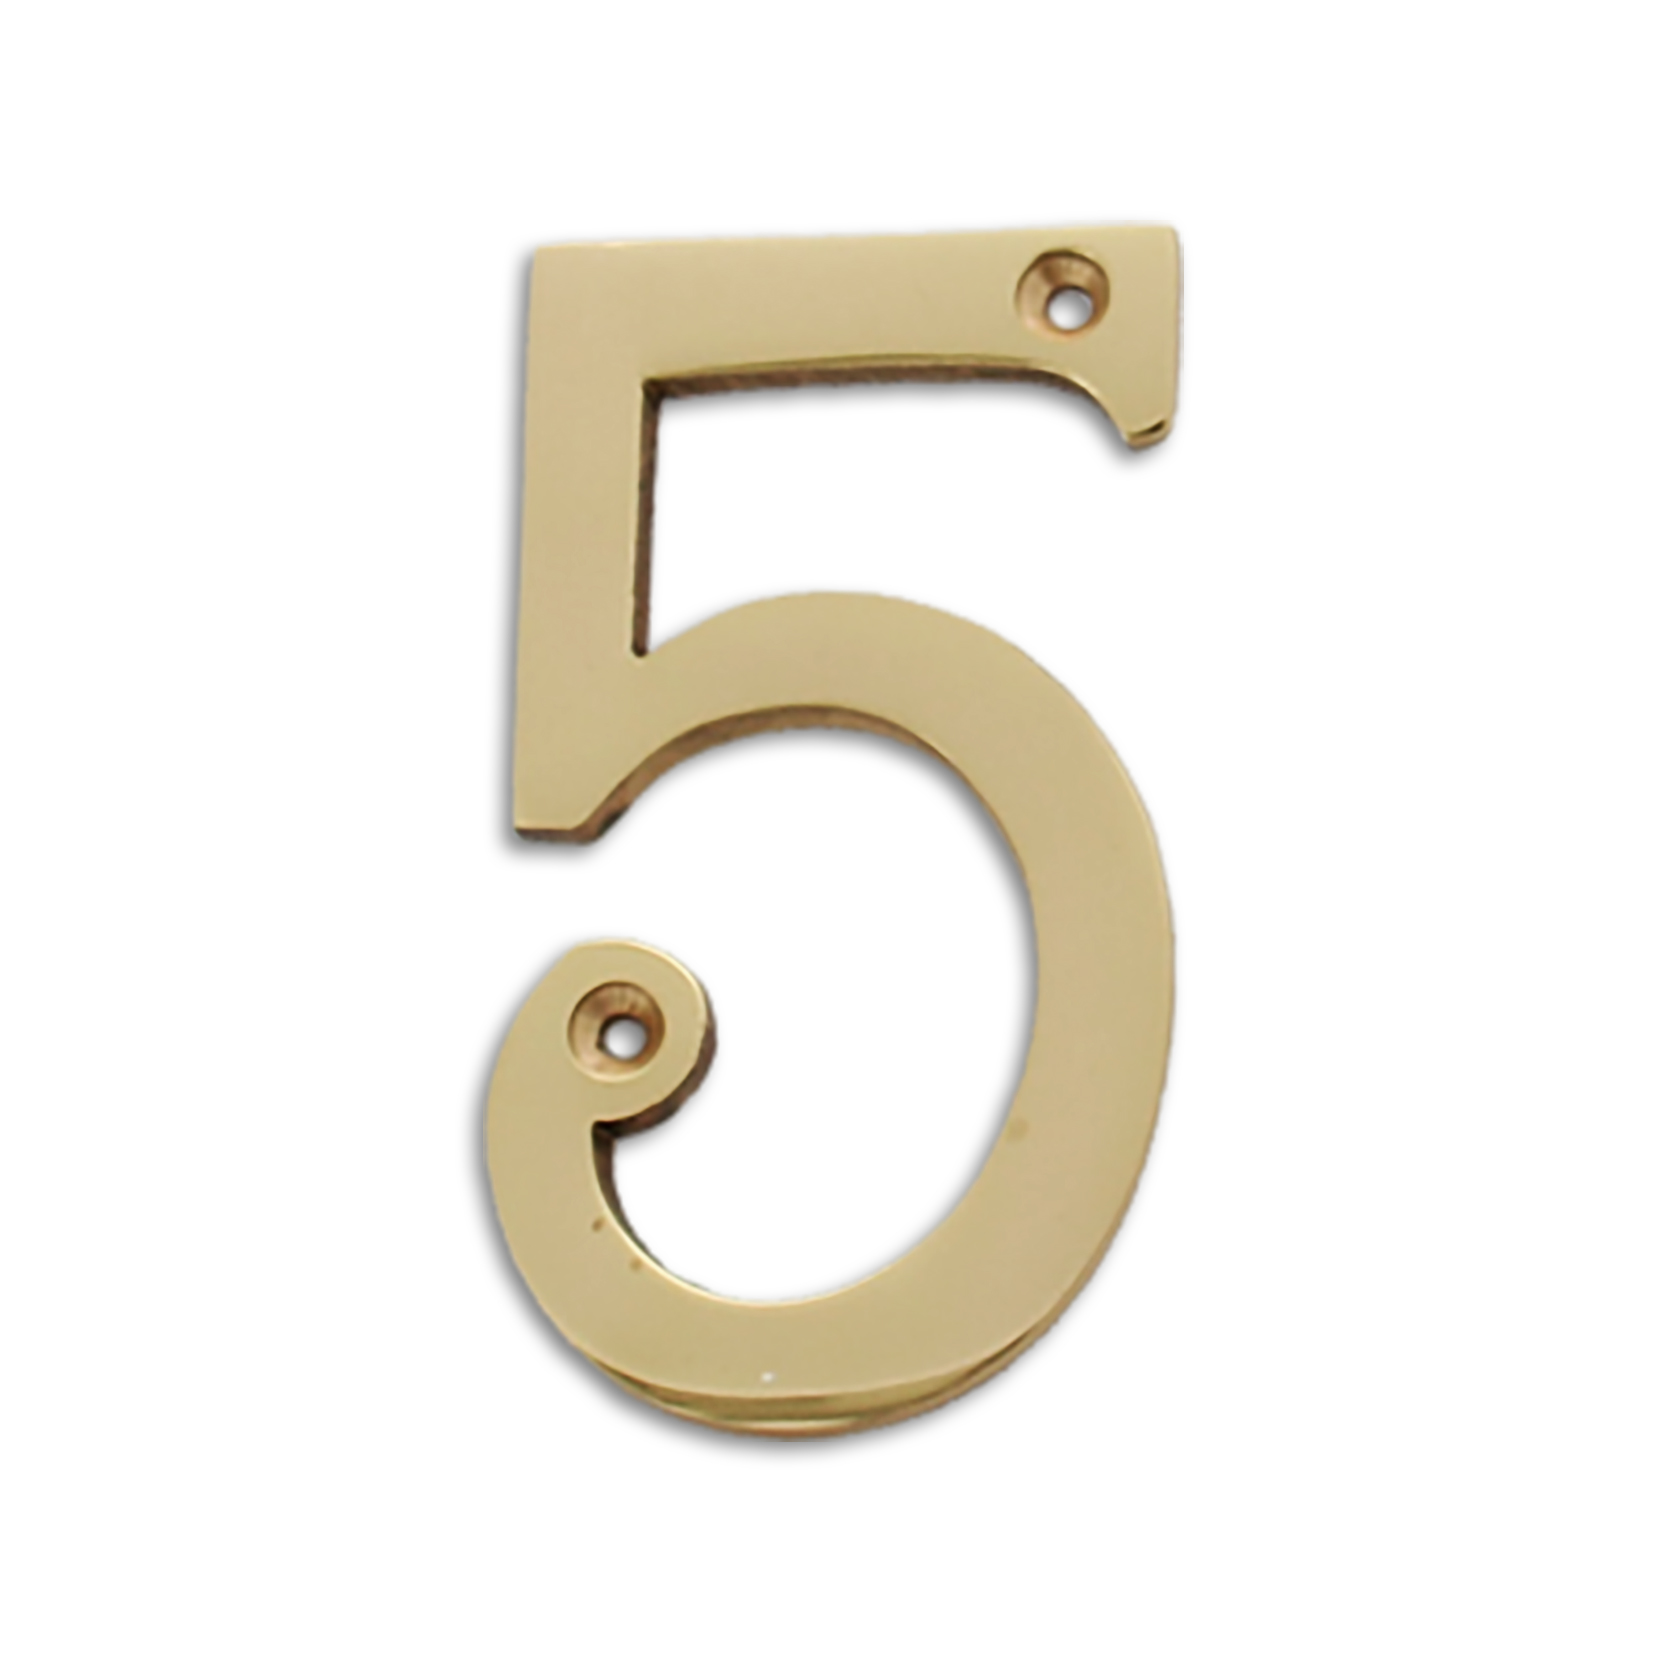 Polished brass 4 inch house numbers letters rch supply co for House numbers